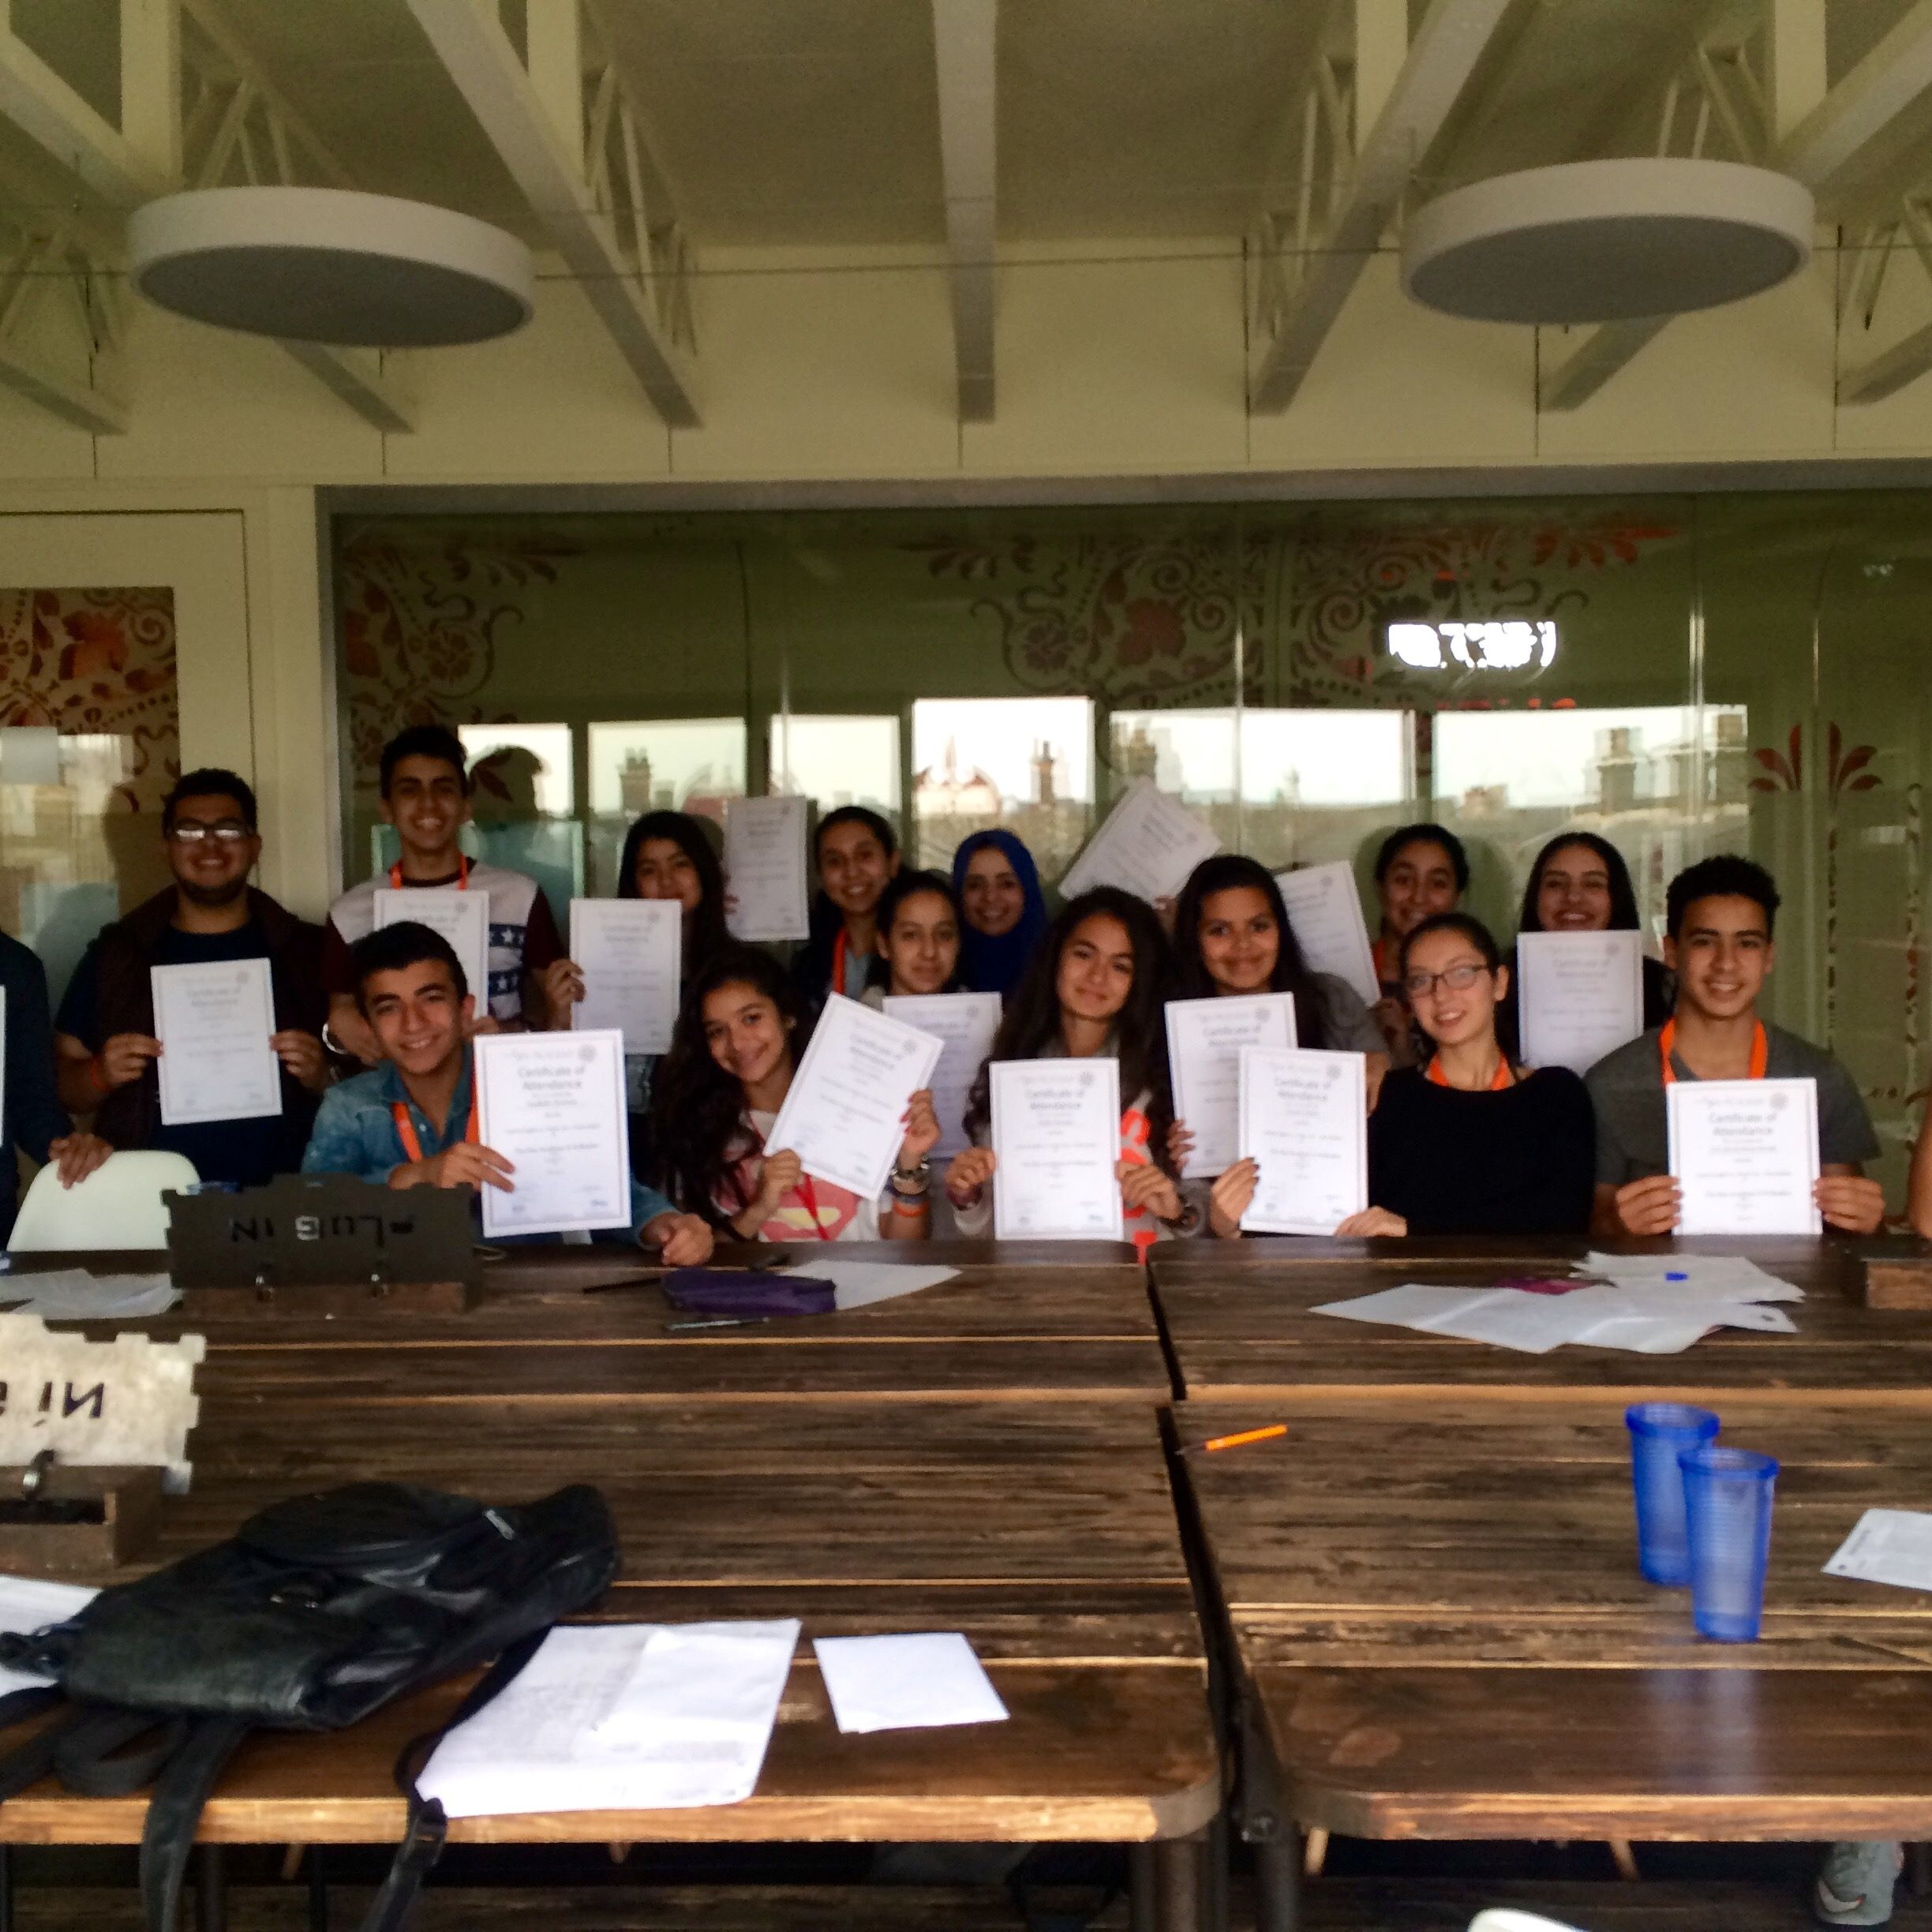 congrats to our moroccan students on getting their tsa certificates